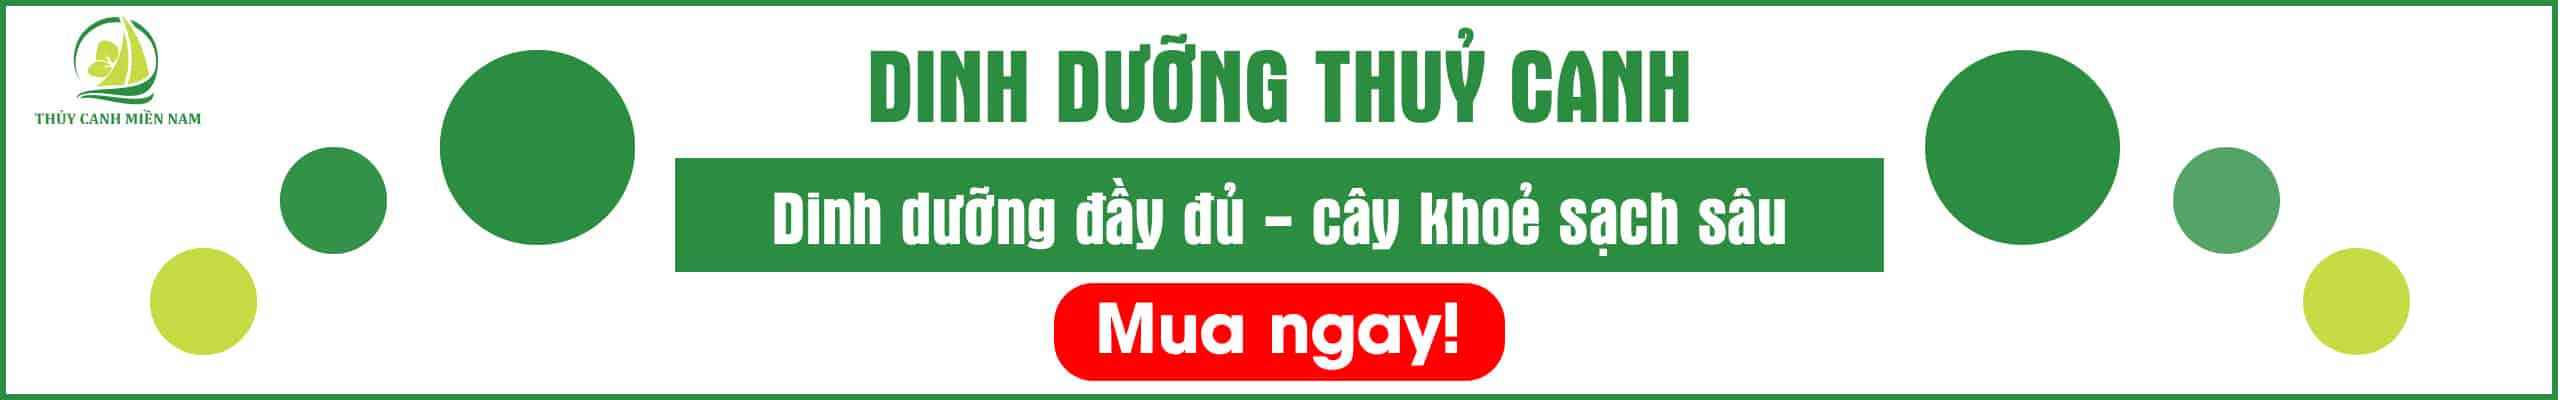 dinh-duong-thuy-canh